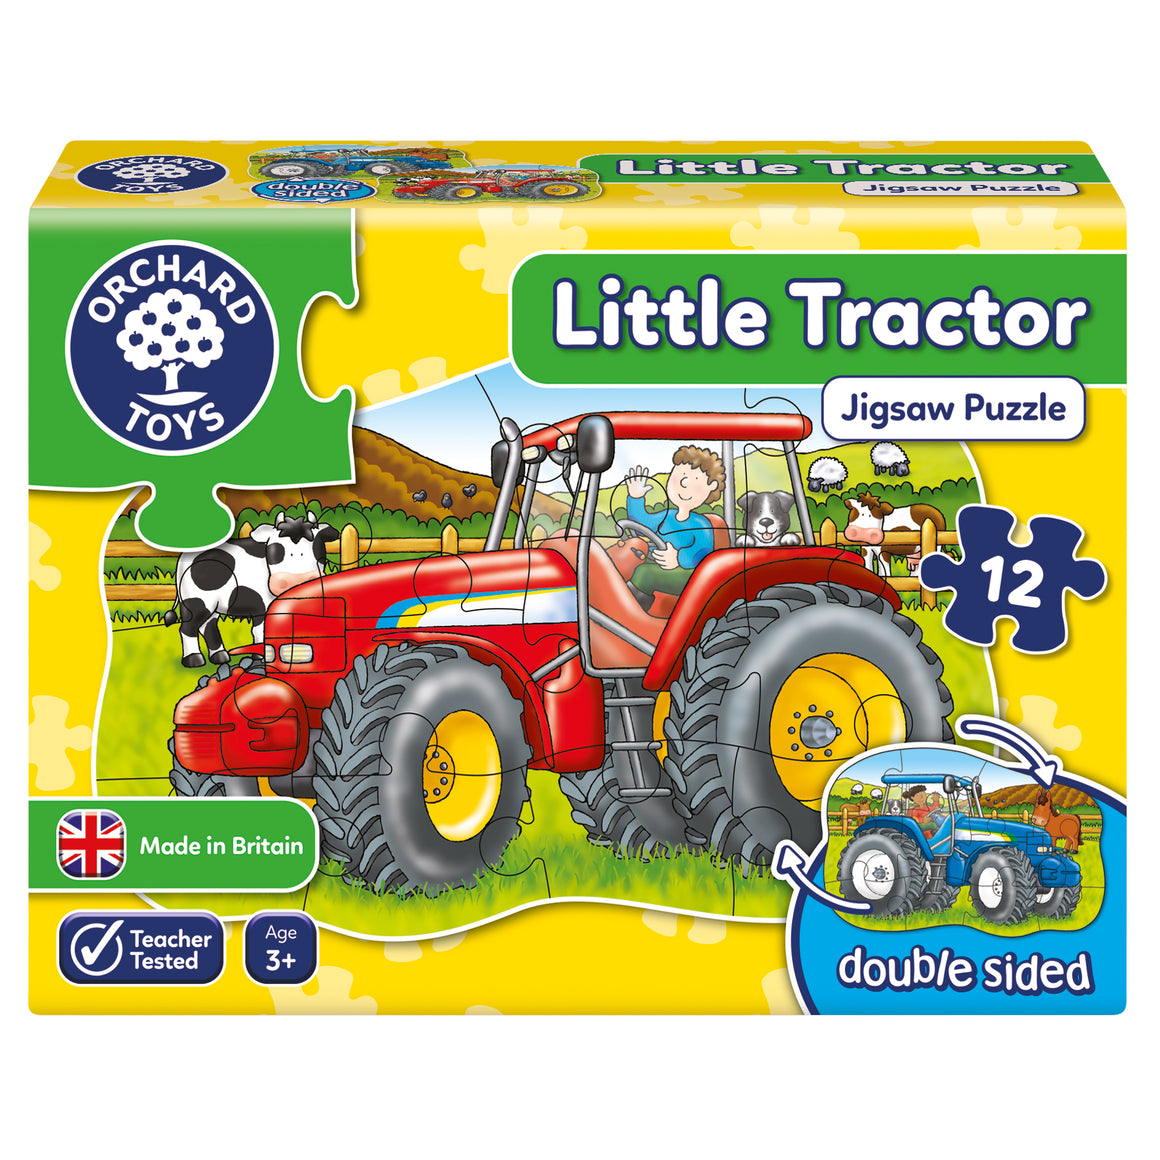 Little Tractor - The Tiny Toy Store